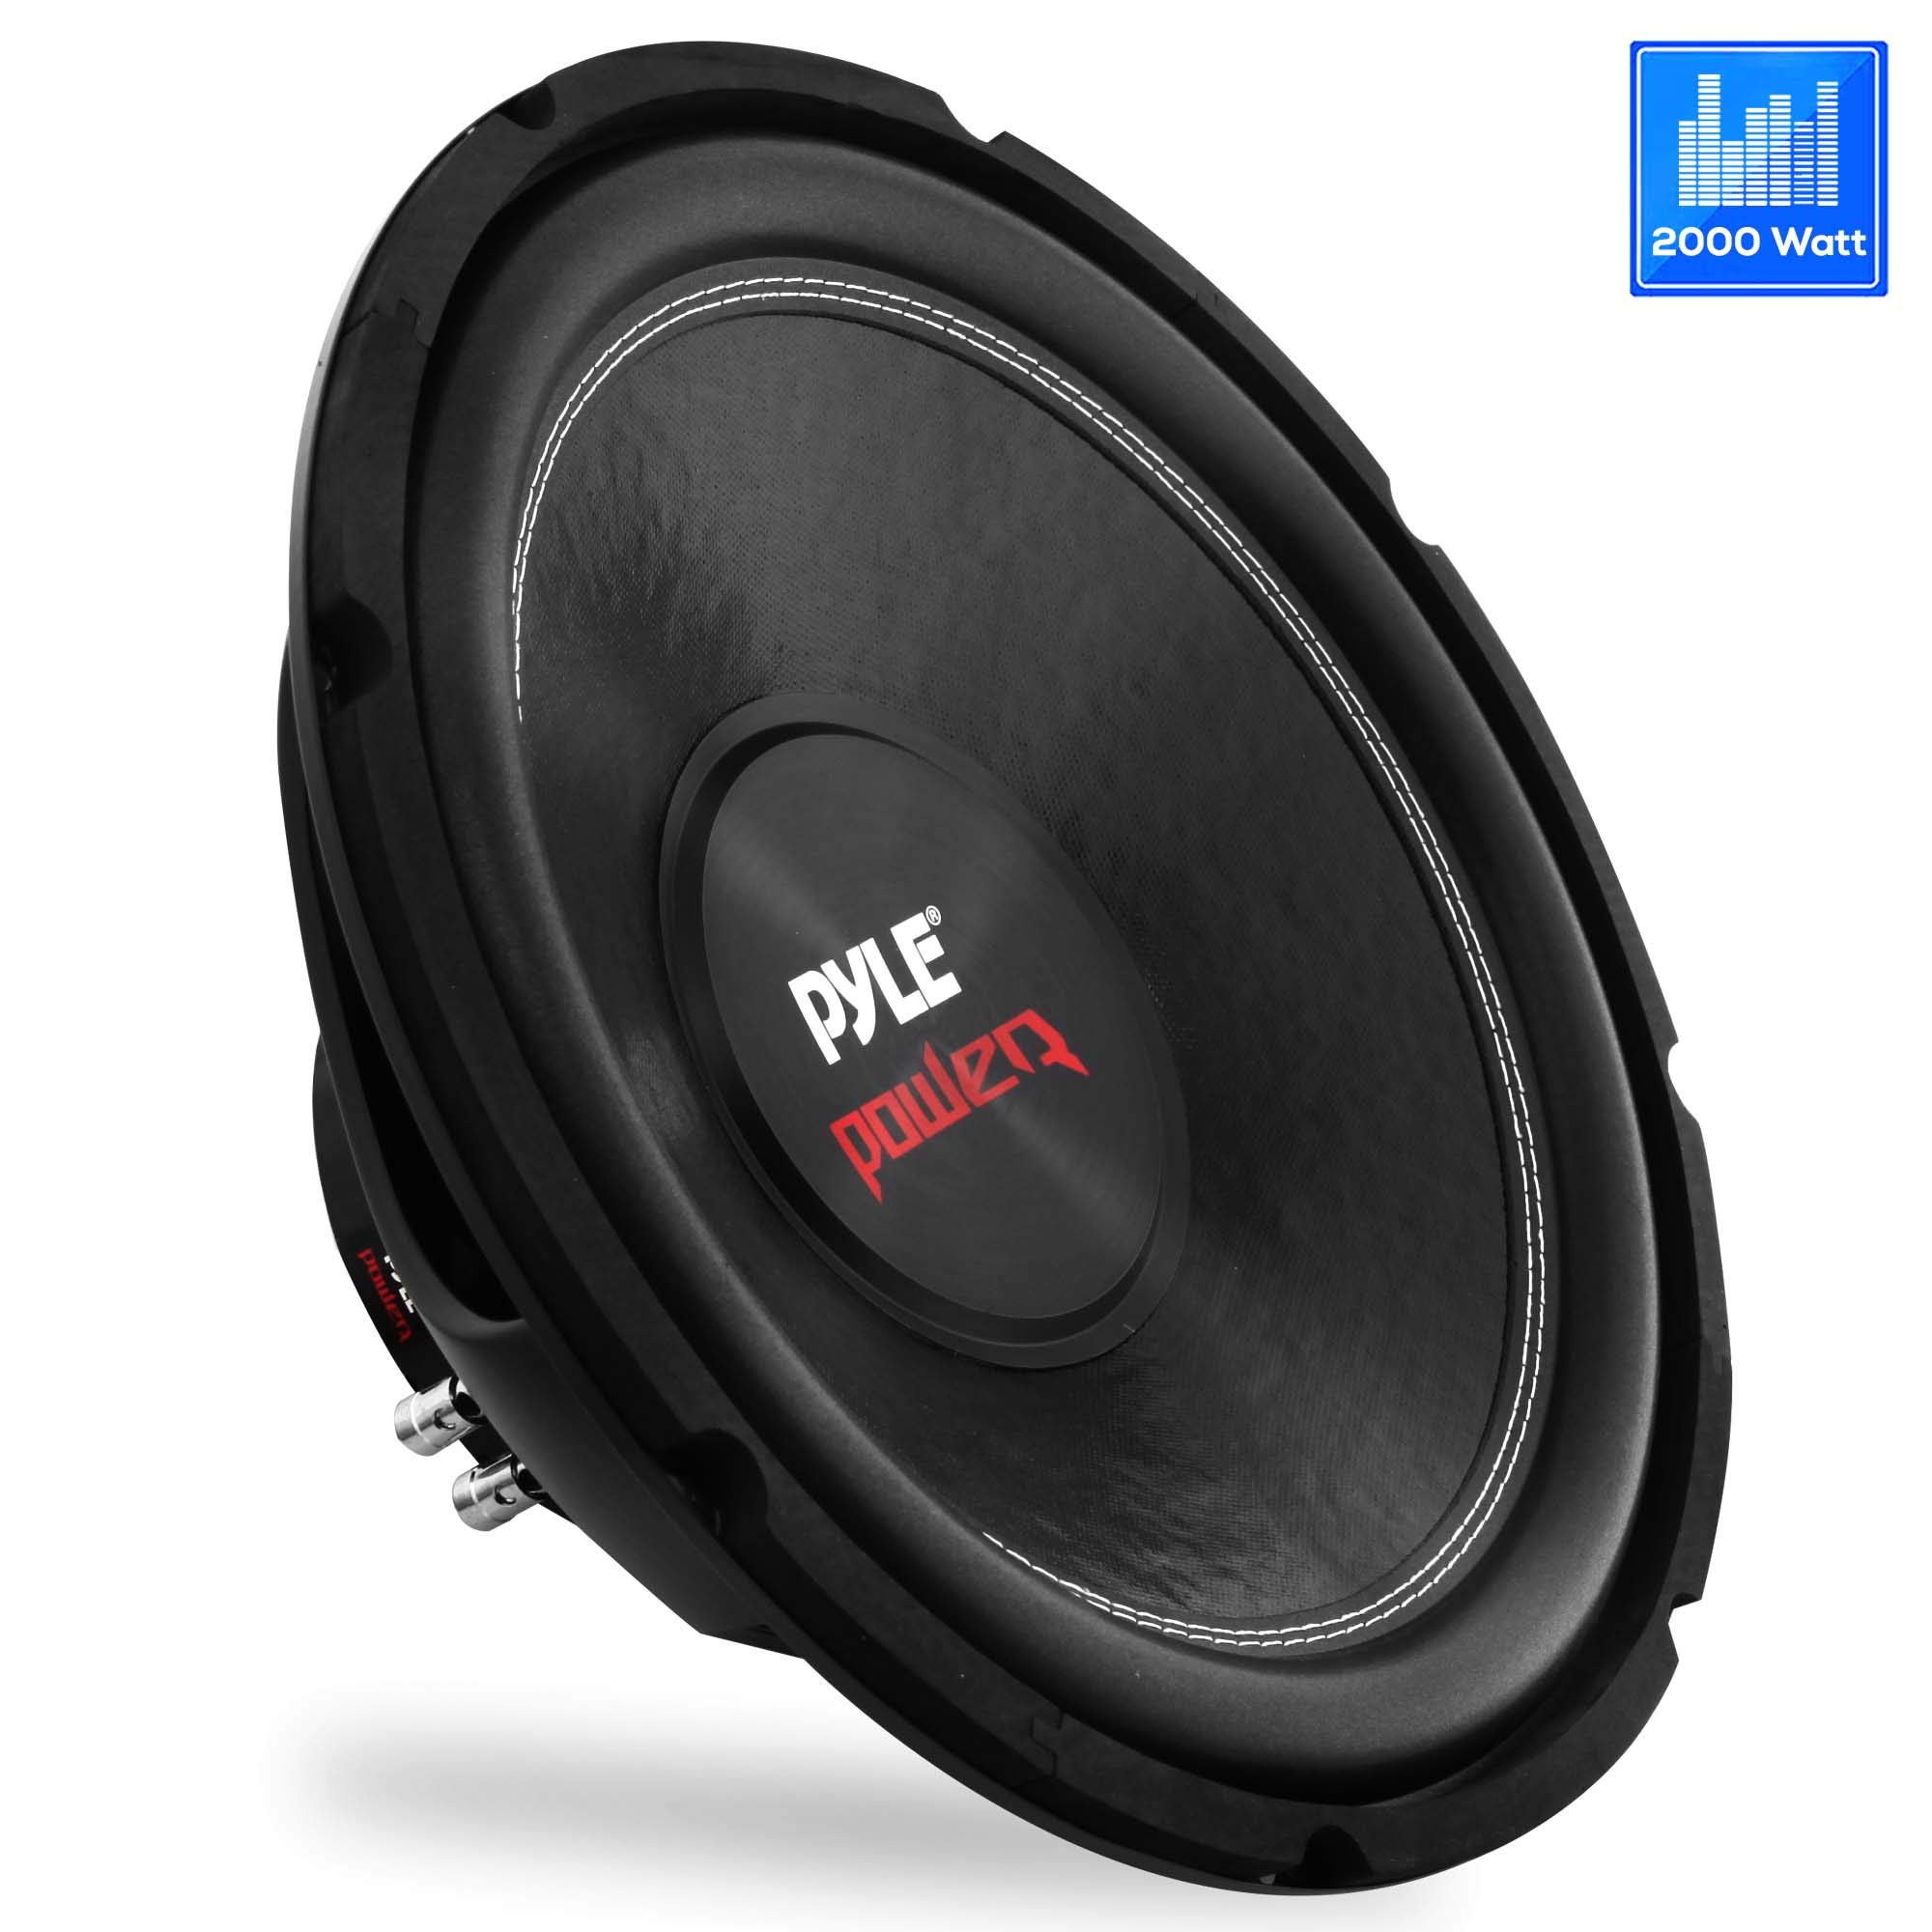 Car Vehicle Subwoofer Audio Speaker - 15inch Non-Pressed Paper Cone, Black Steel Basket, Dual Voice Coil 4 Ohm Impedance, 2000 Watt Power, Foam Surround for Vehicle Stereo Sound System - Pyle PLPW15D by Pyle